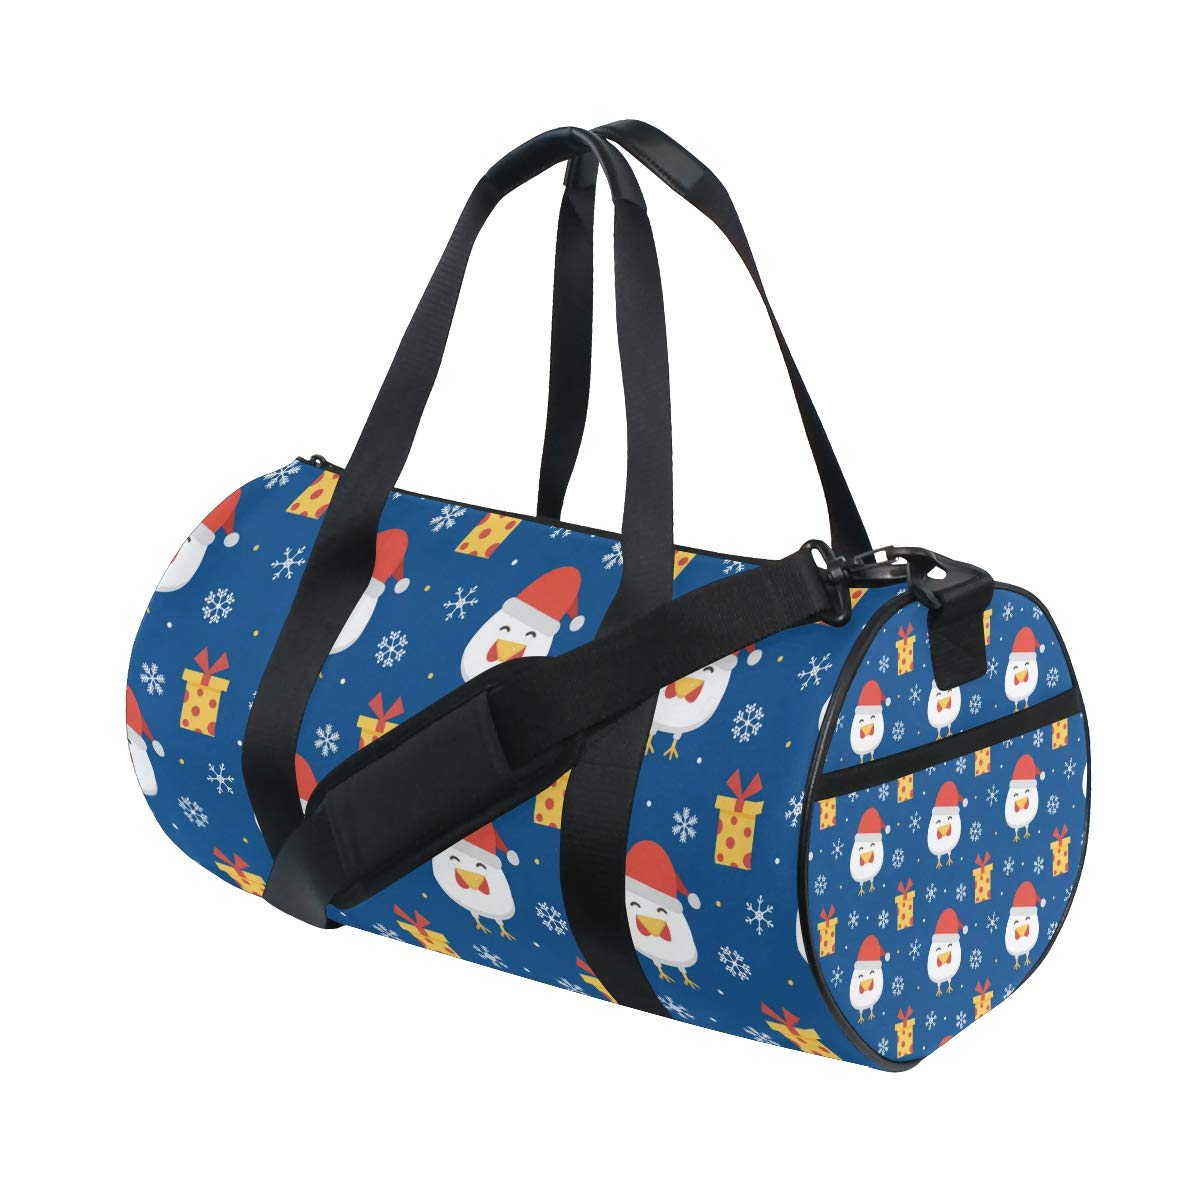 Turkey Christmas Wrapping Paper Popular casual fitness bag,Non-Slip Wearable Crossbody Bag Waterproof Shoulder Bag.